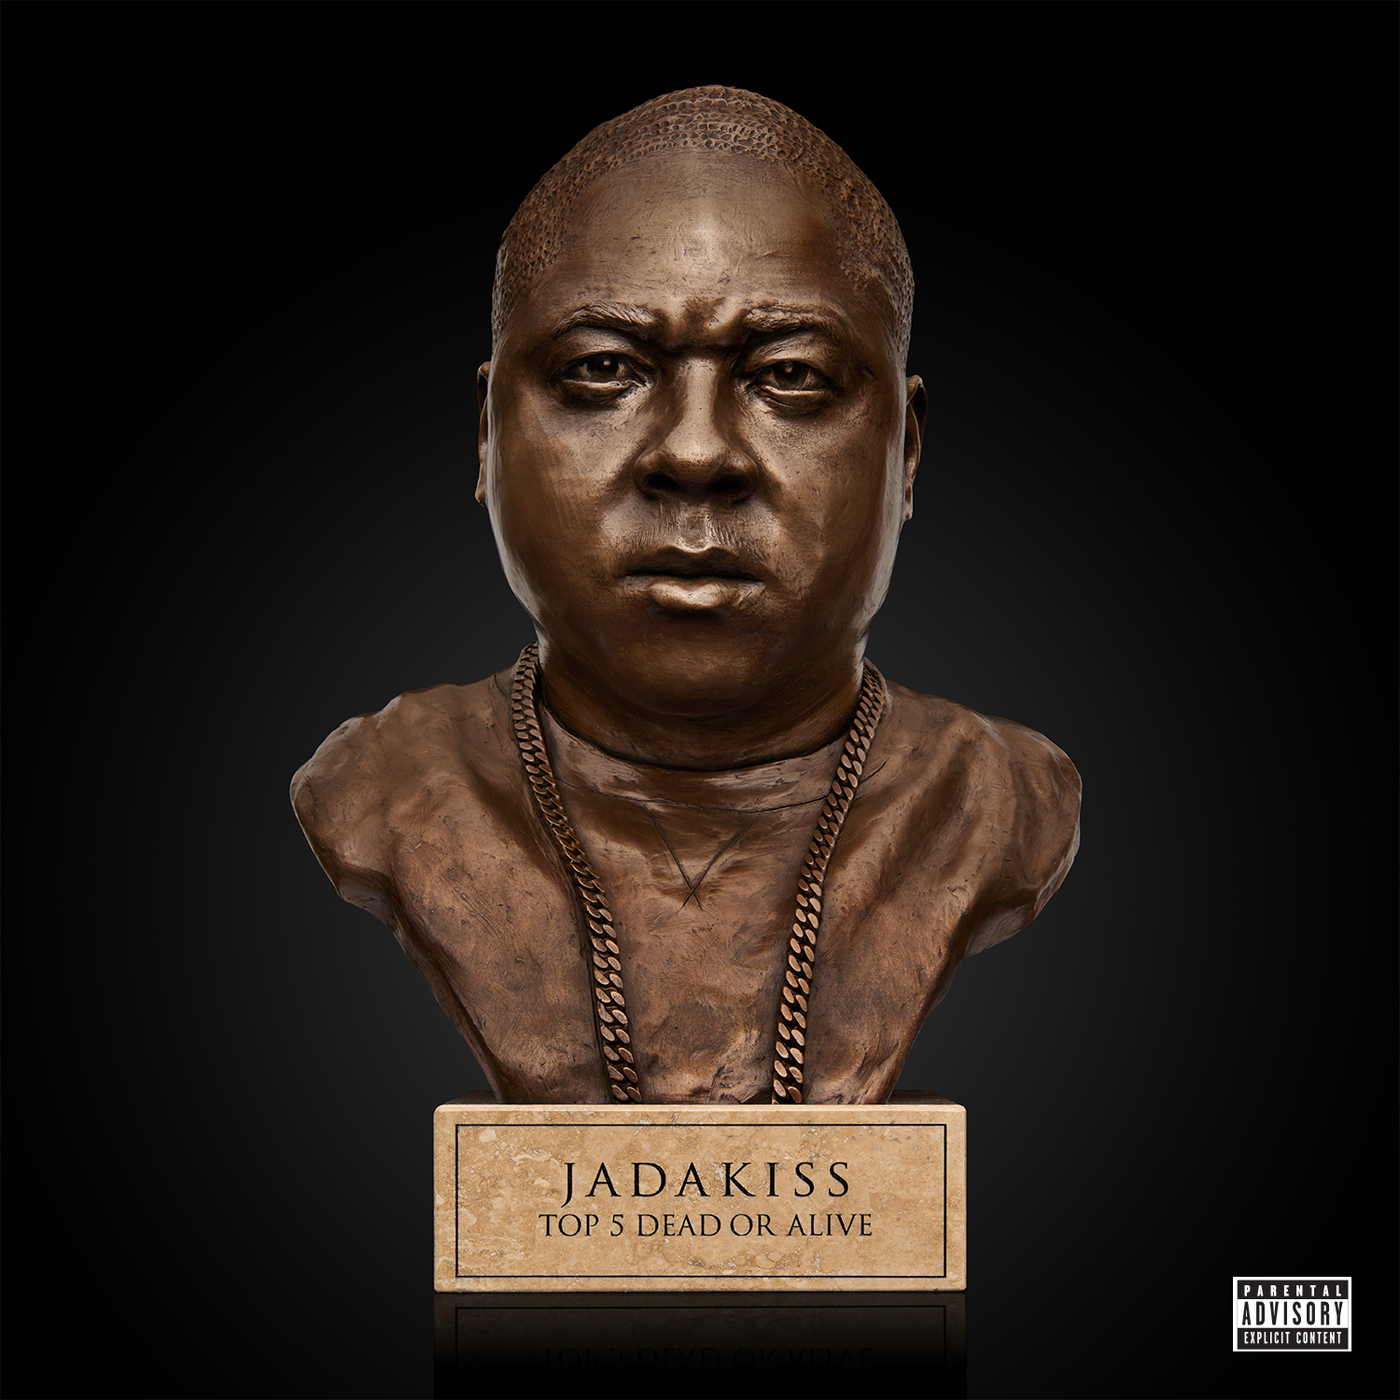 00-jadakiss-top_5_dead_or_alive-web-2015